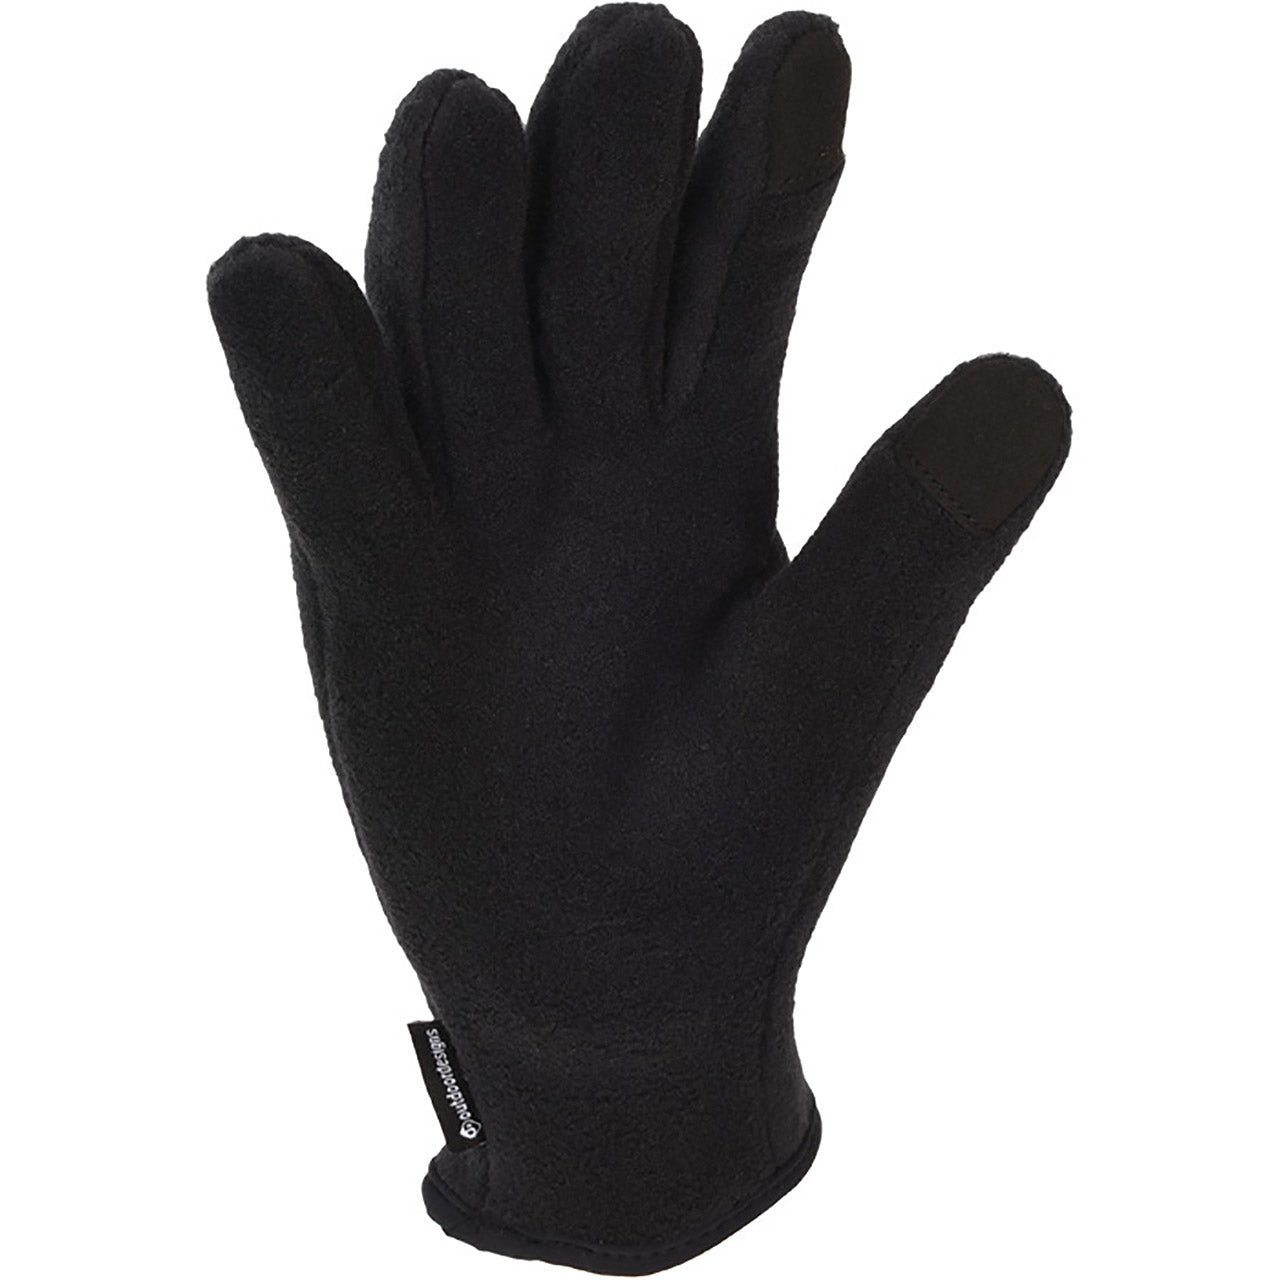 Outdoor Designs Fuji Mid-Layer Glove - Men's